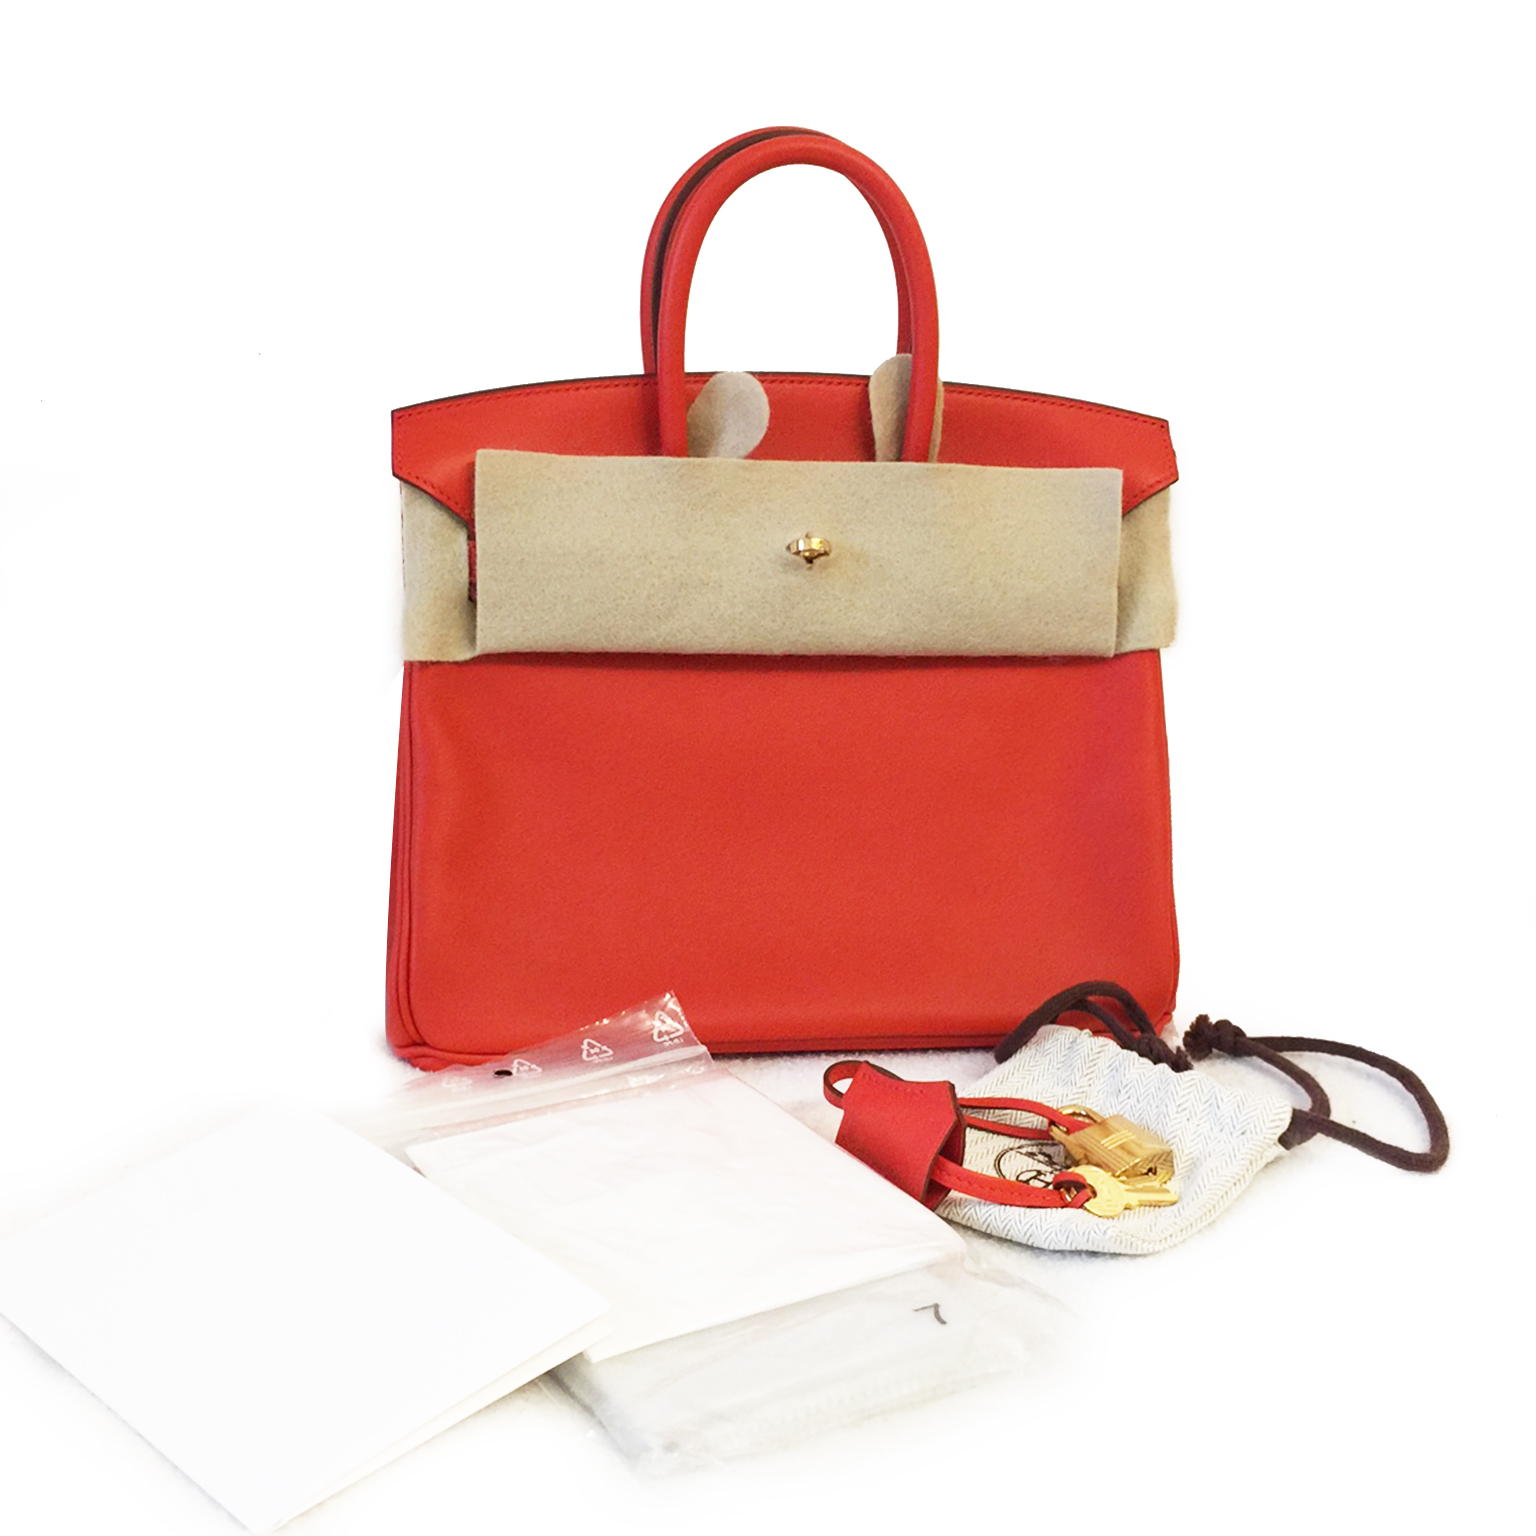 Never Used Hermes Birkin 25 Rouge Capucine Swift searching For Birkin Bag    no waitinglist only 100% atuthentic full set neuf 100% 57bfc13529bb1